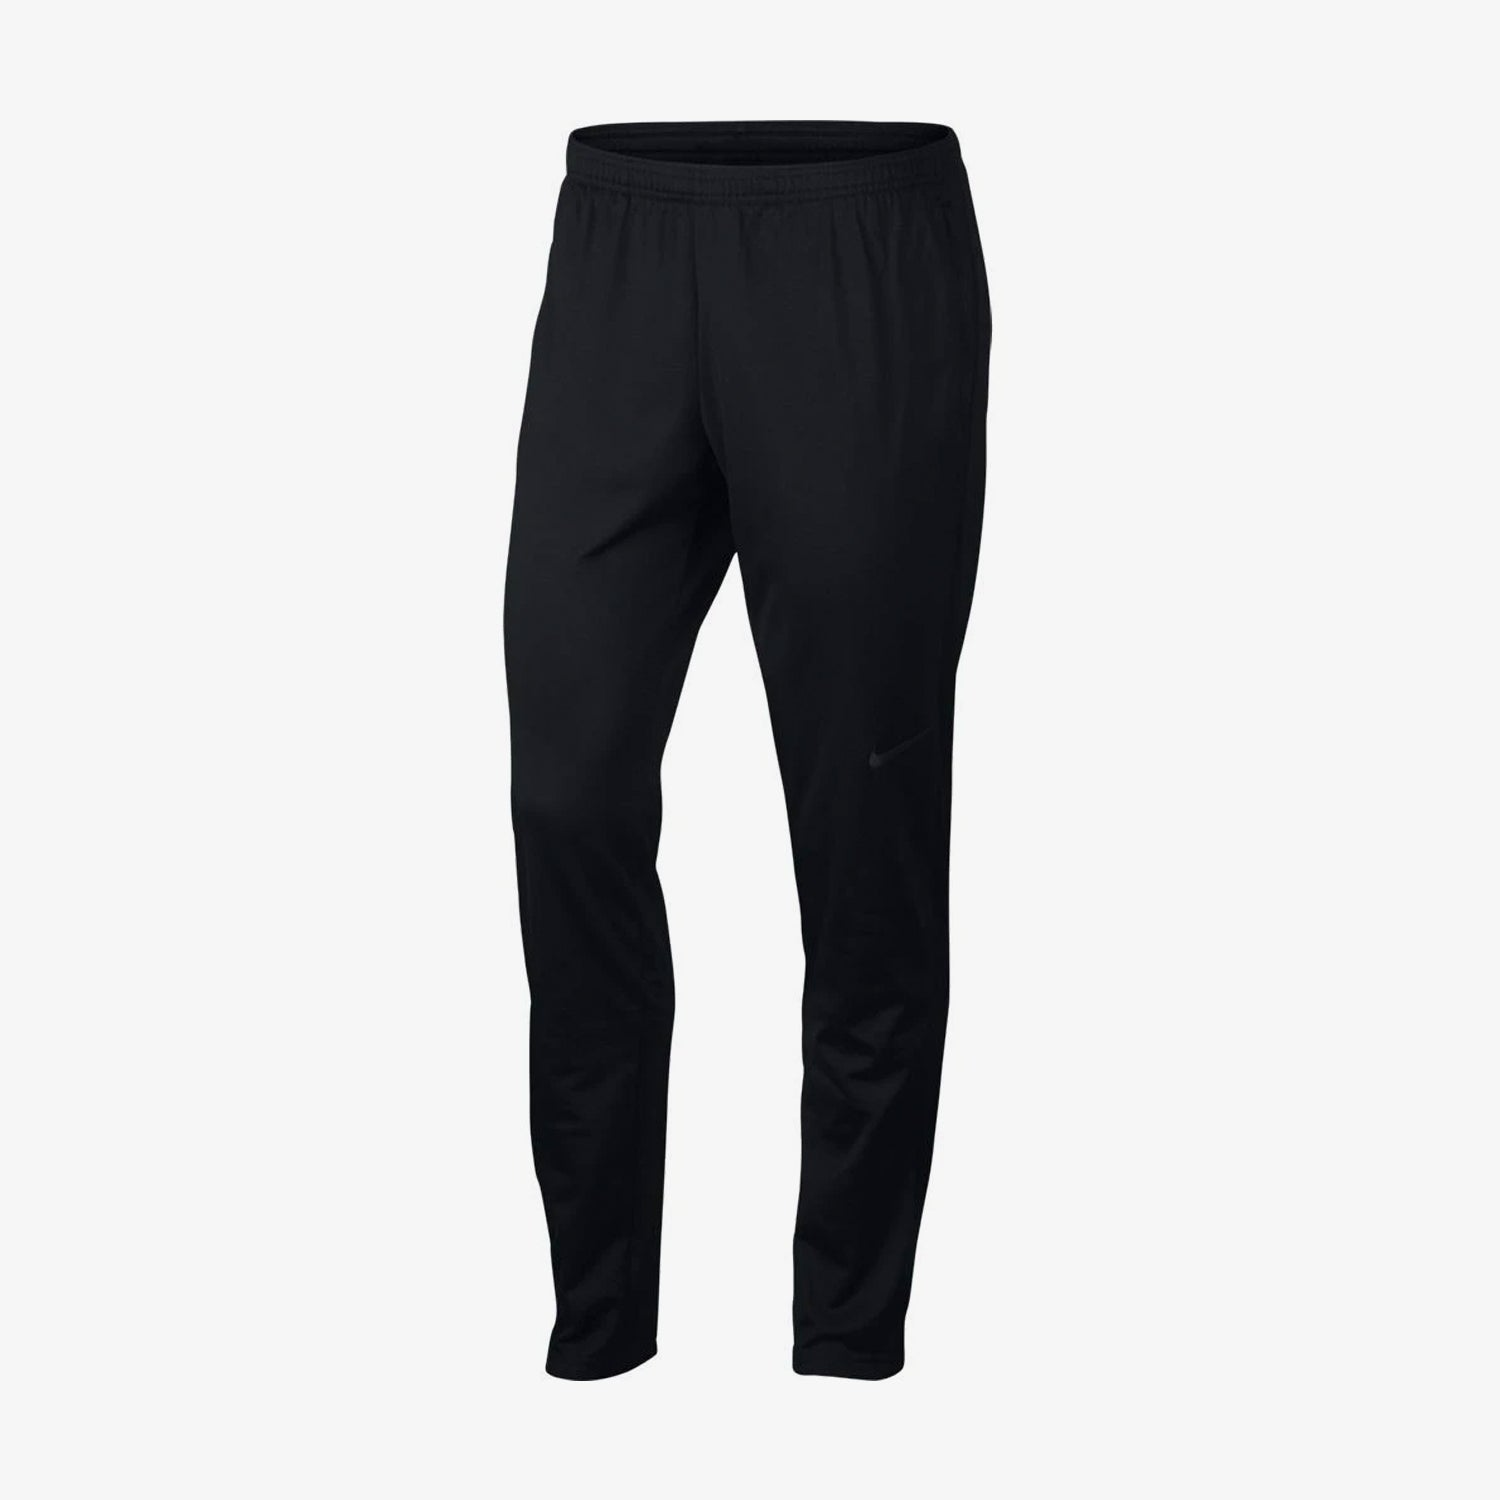 Women's Academy Pant - Black